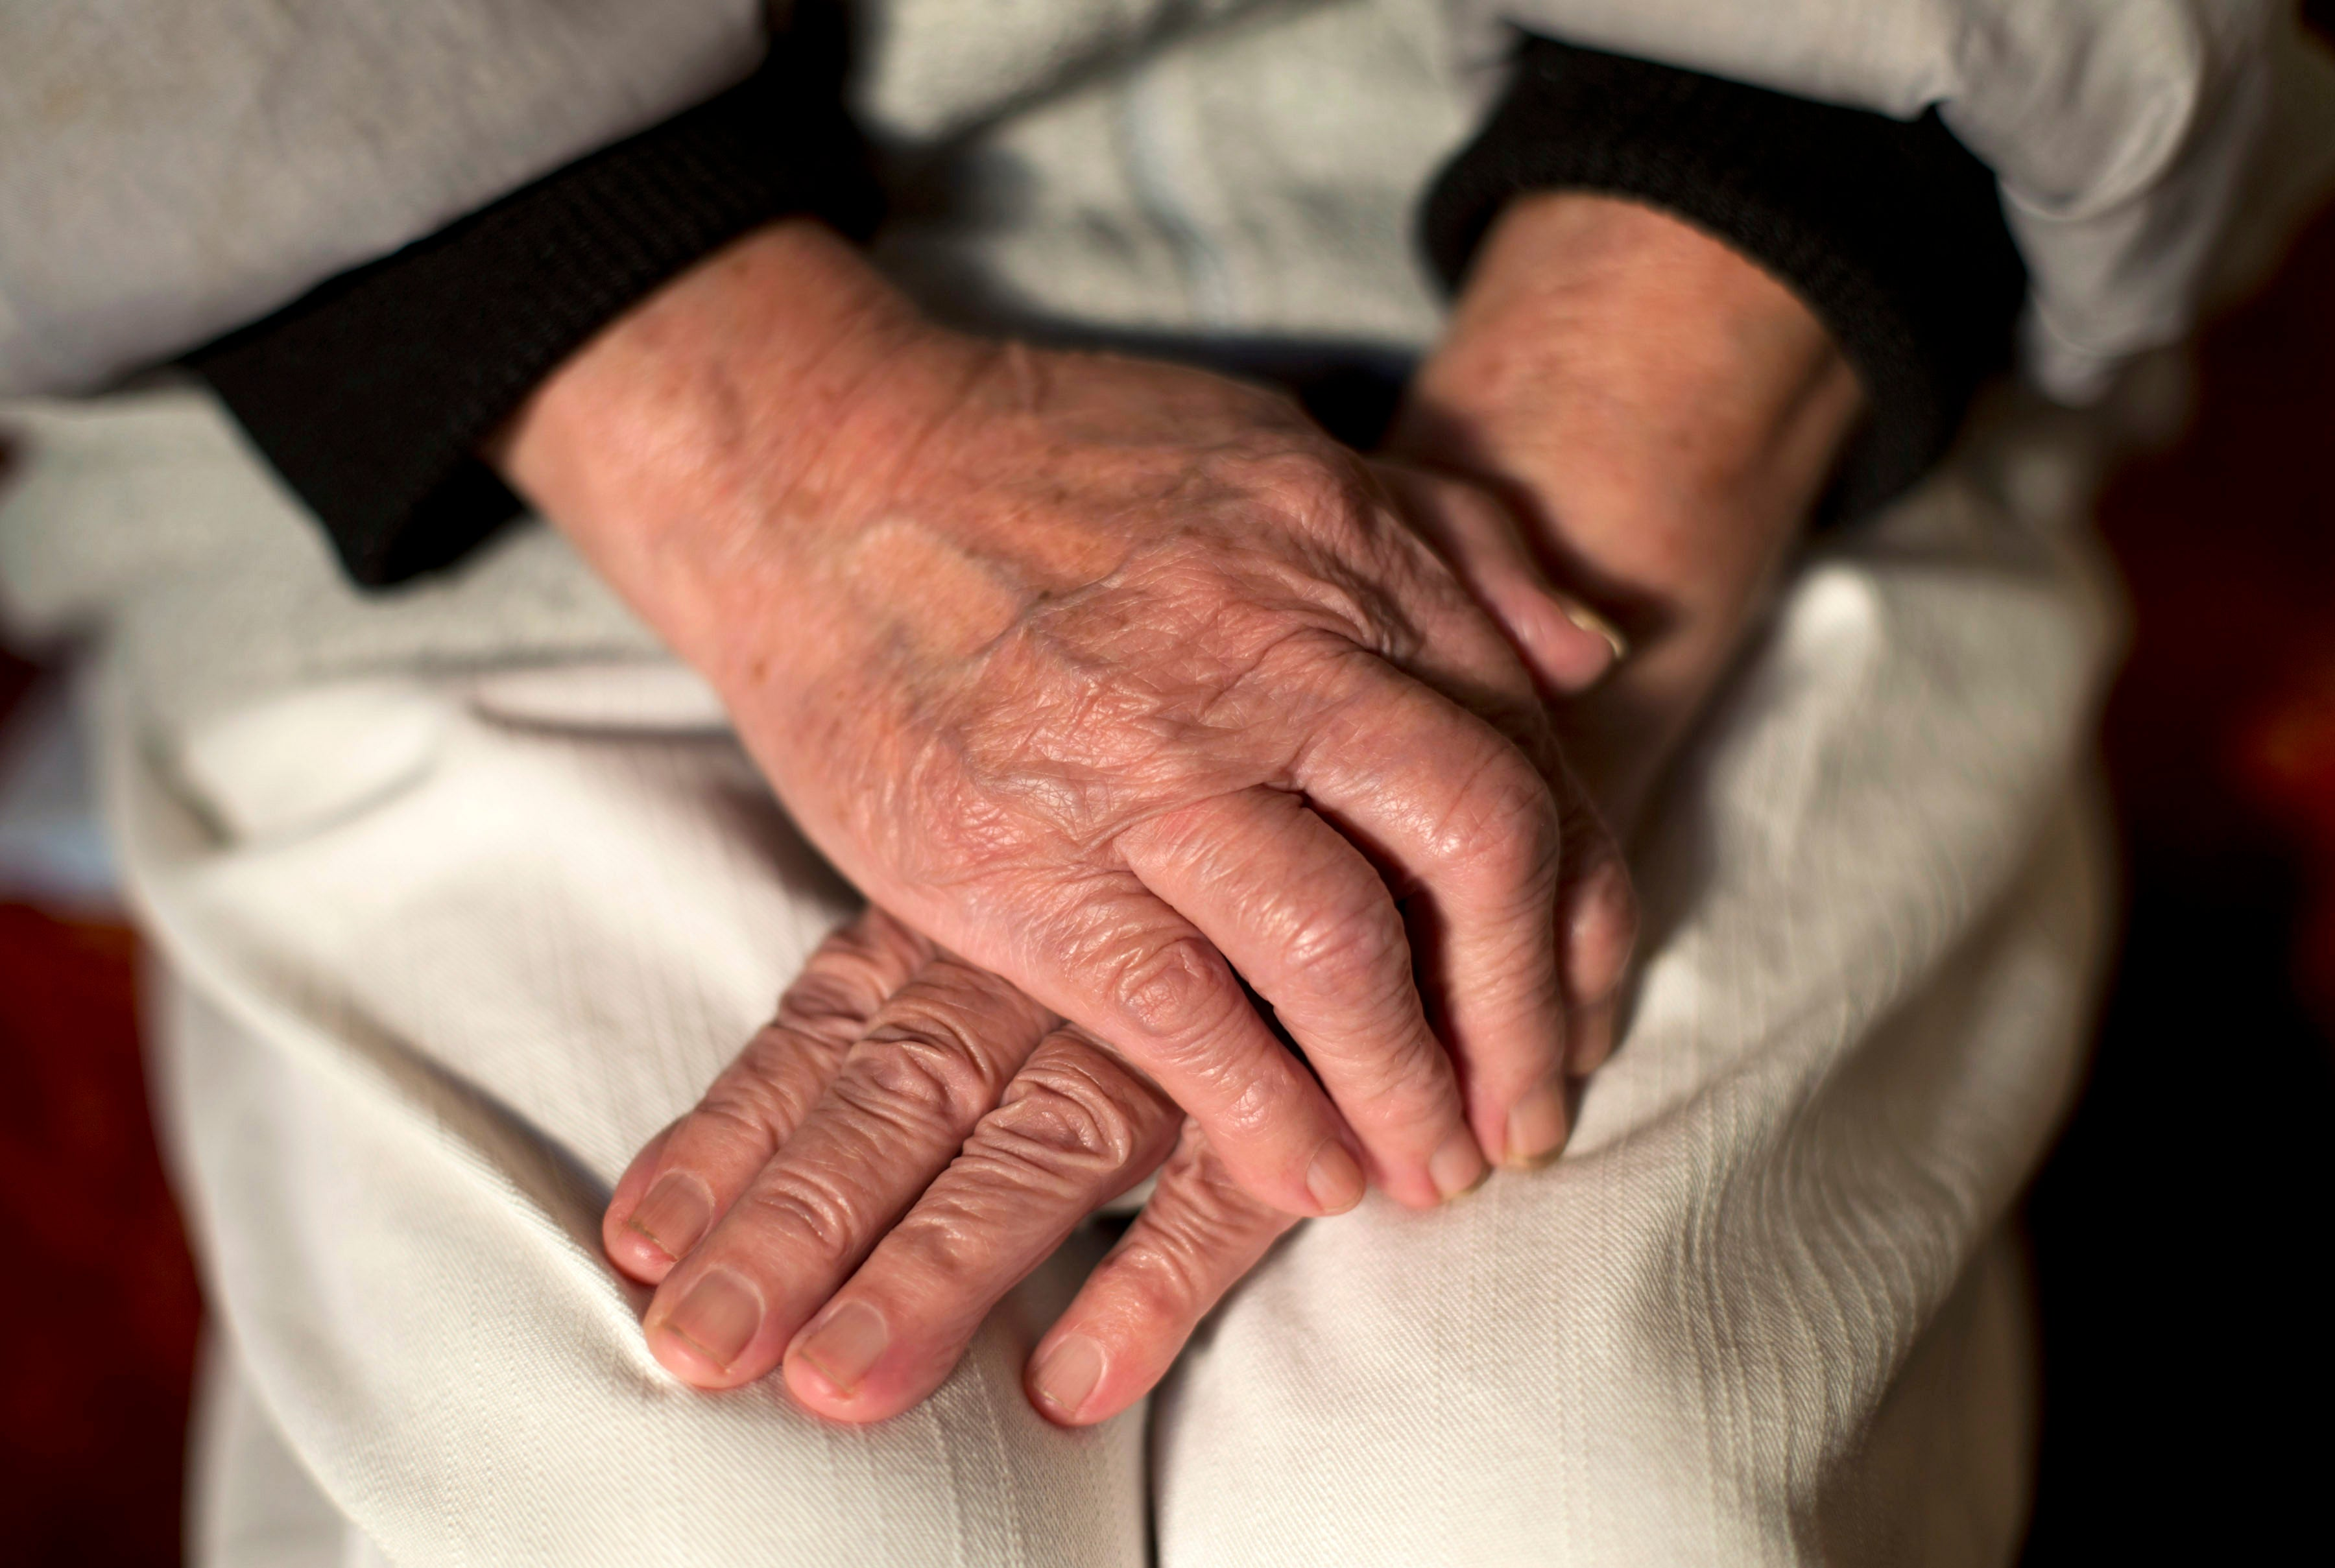 'Exhausted' family and friends spent 92 million extra hours caring for dementia sufferers during lockdown